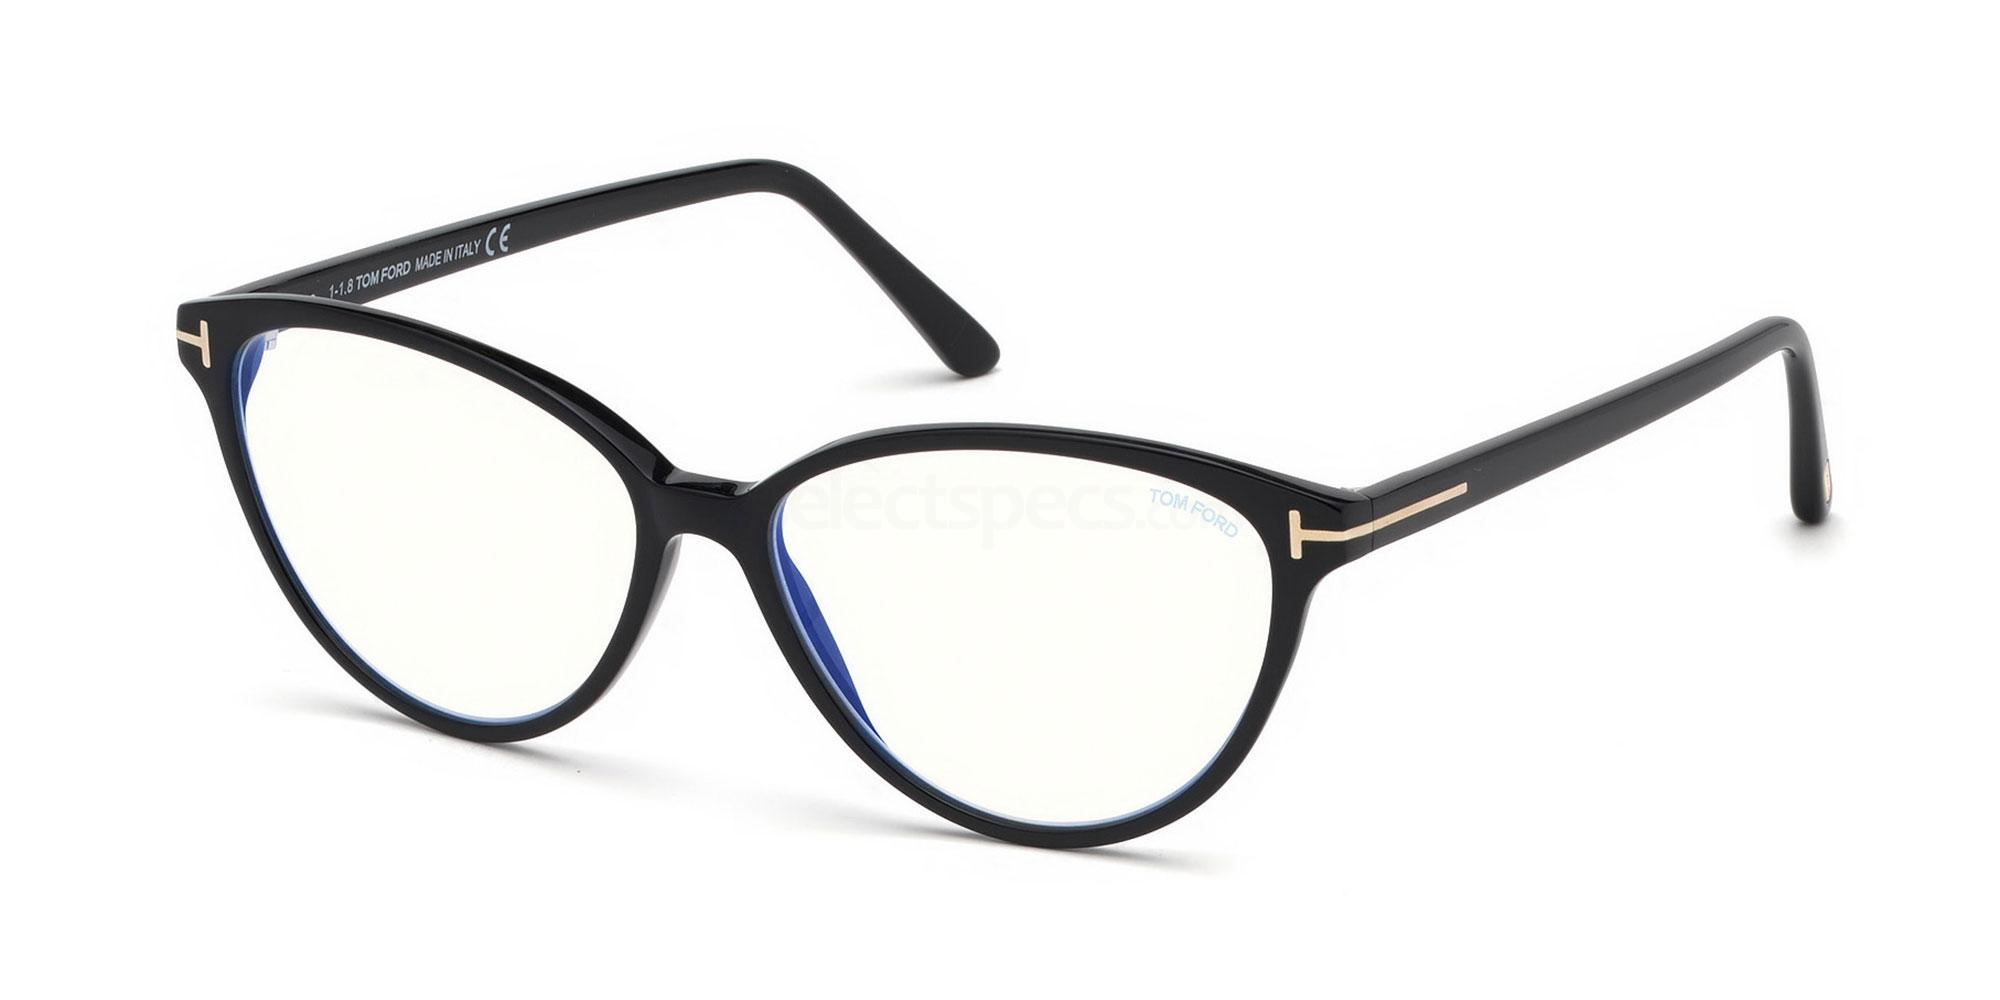 001 FT5545-B Glasses, Tom Ford